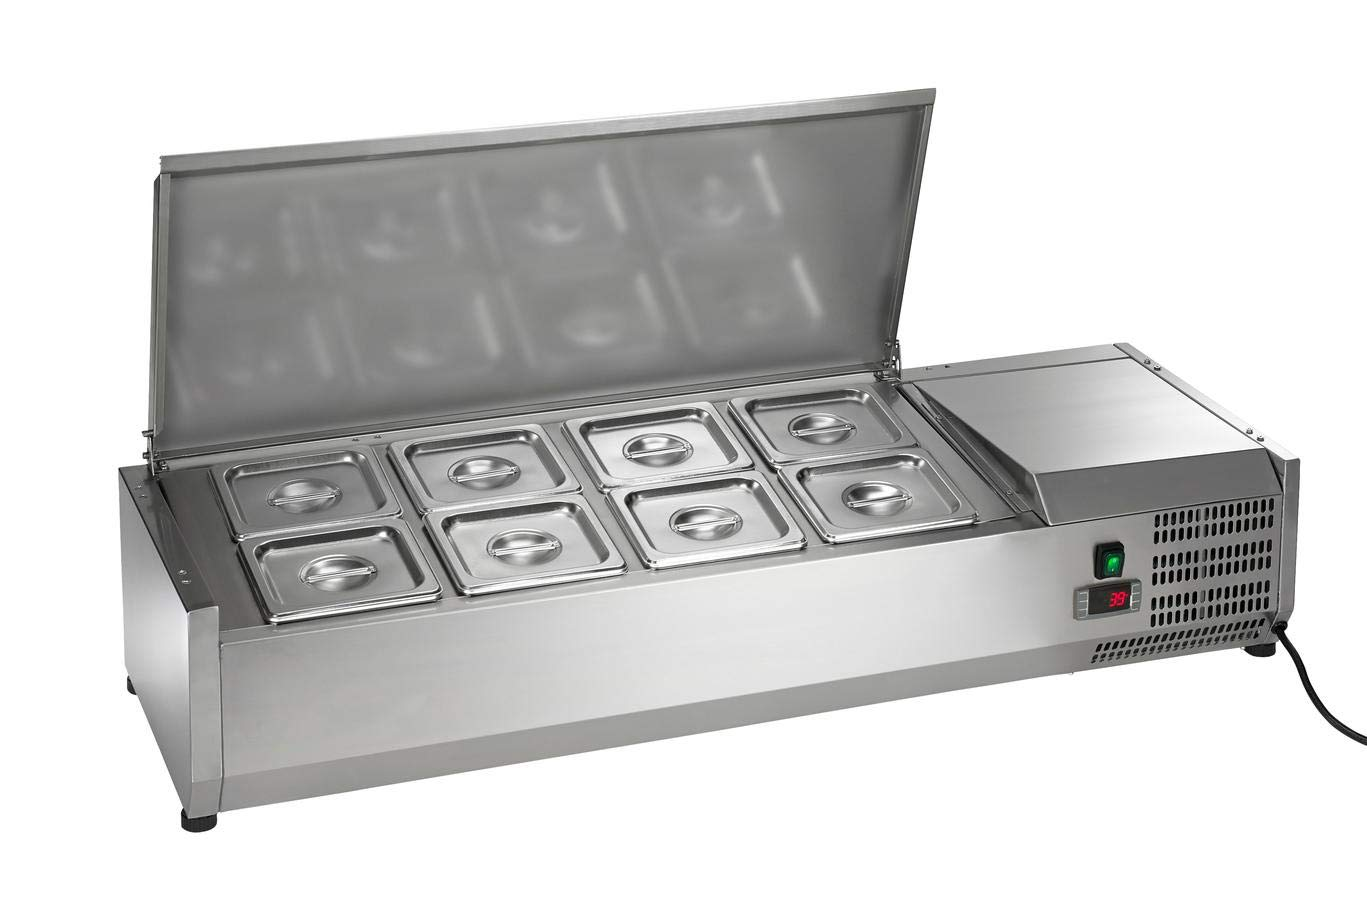 Arctic Air ACP48 47.25-Inch Countertop Refrigerated Sandwich/Salad Prep Table, Stainless Steel, 115v